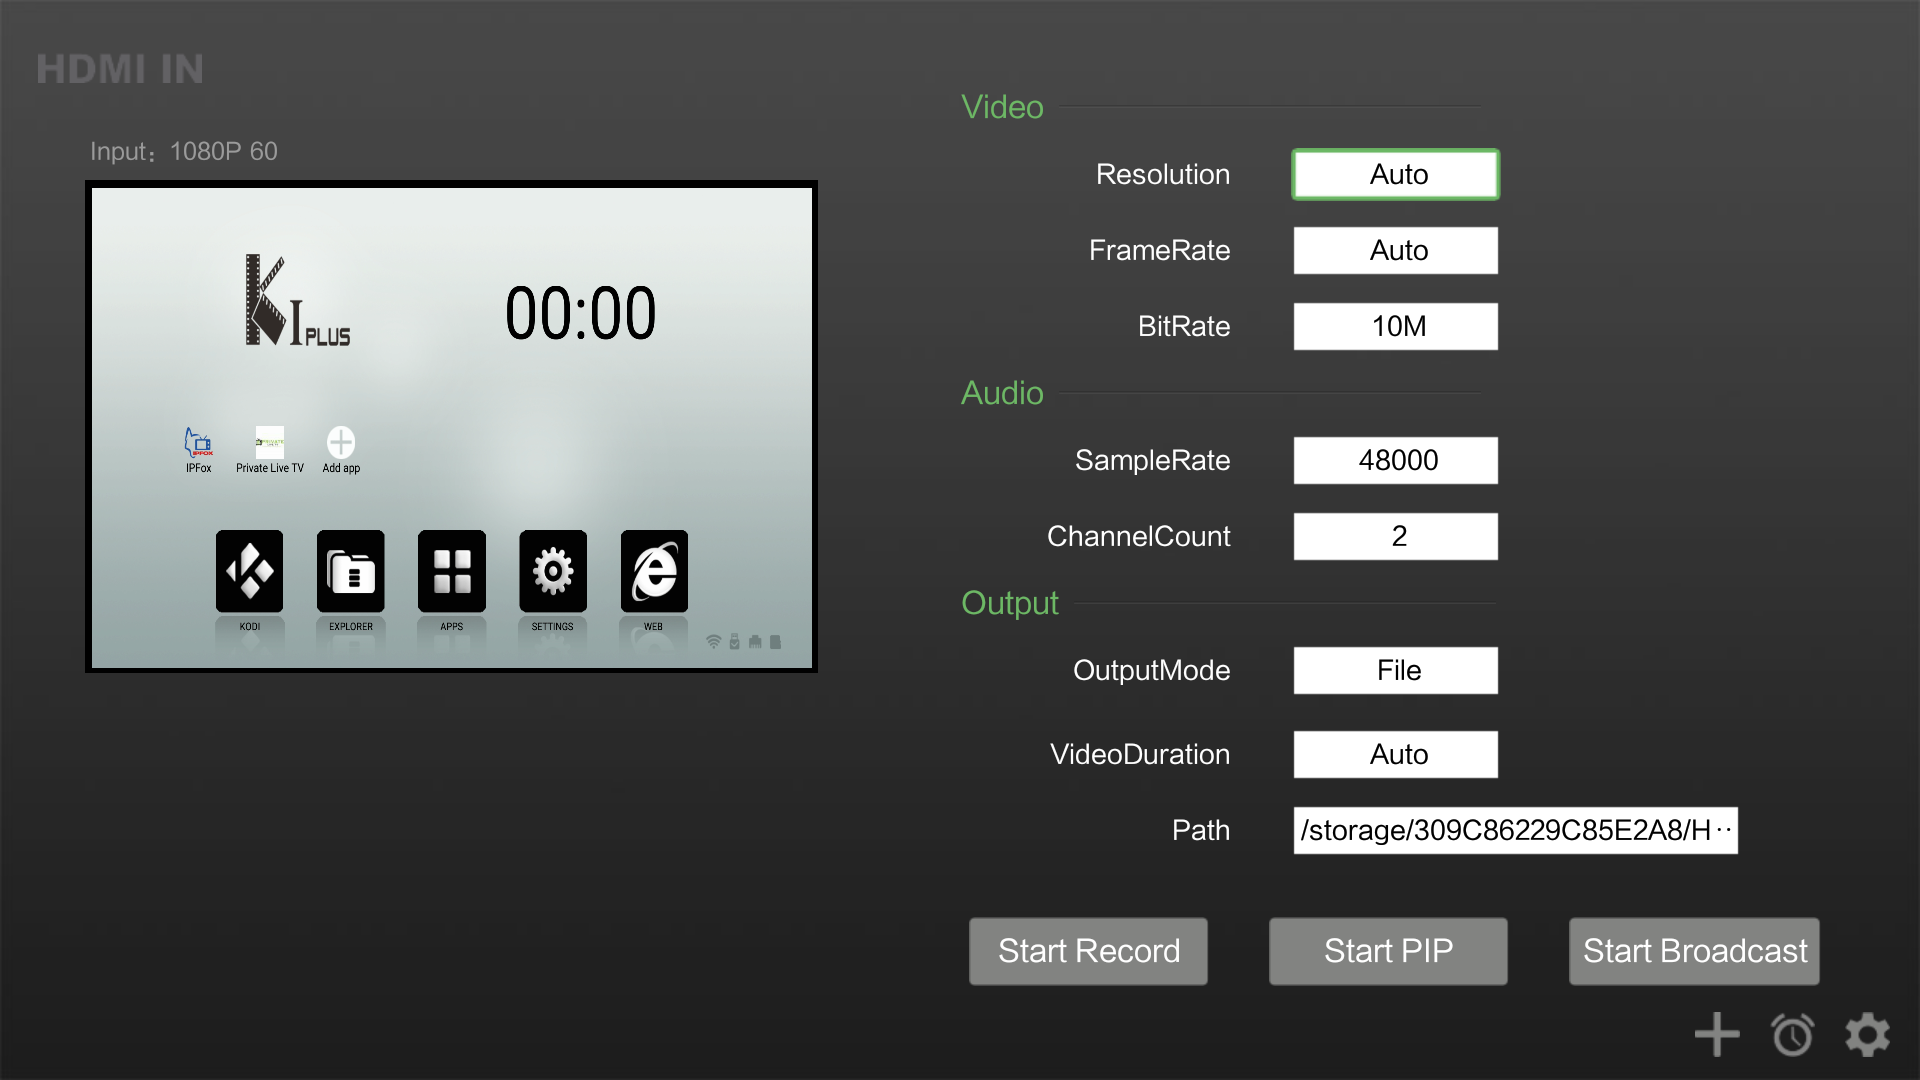 Zidoo X9S Android TV Box HDMI Input Testing - Video Recording, PiP